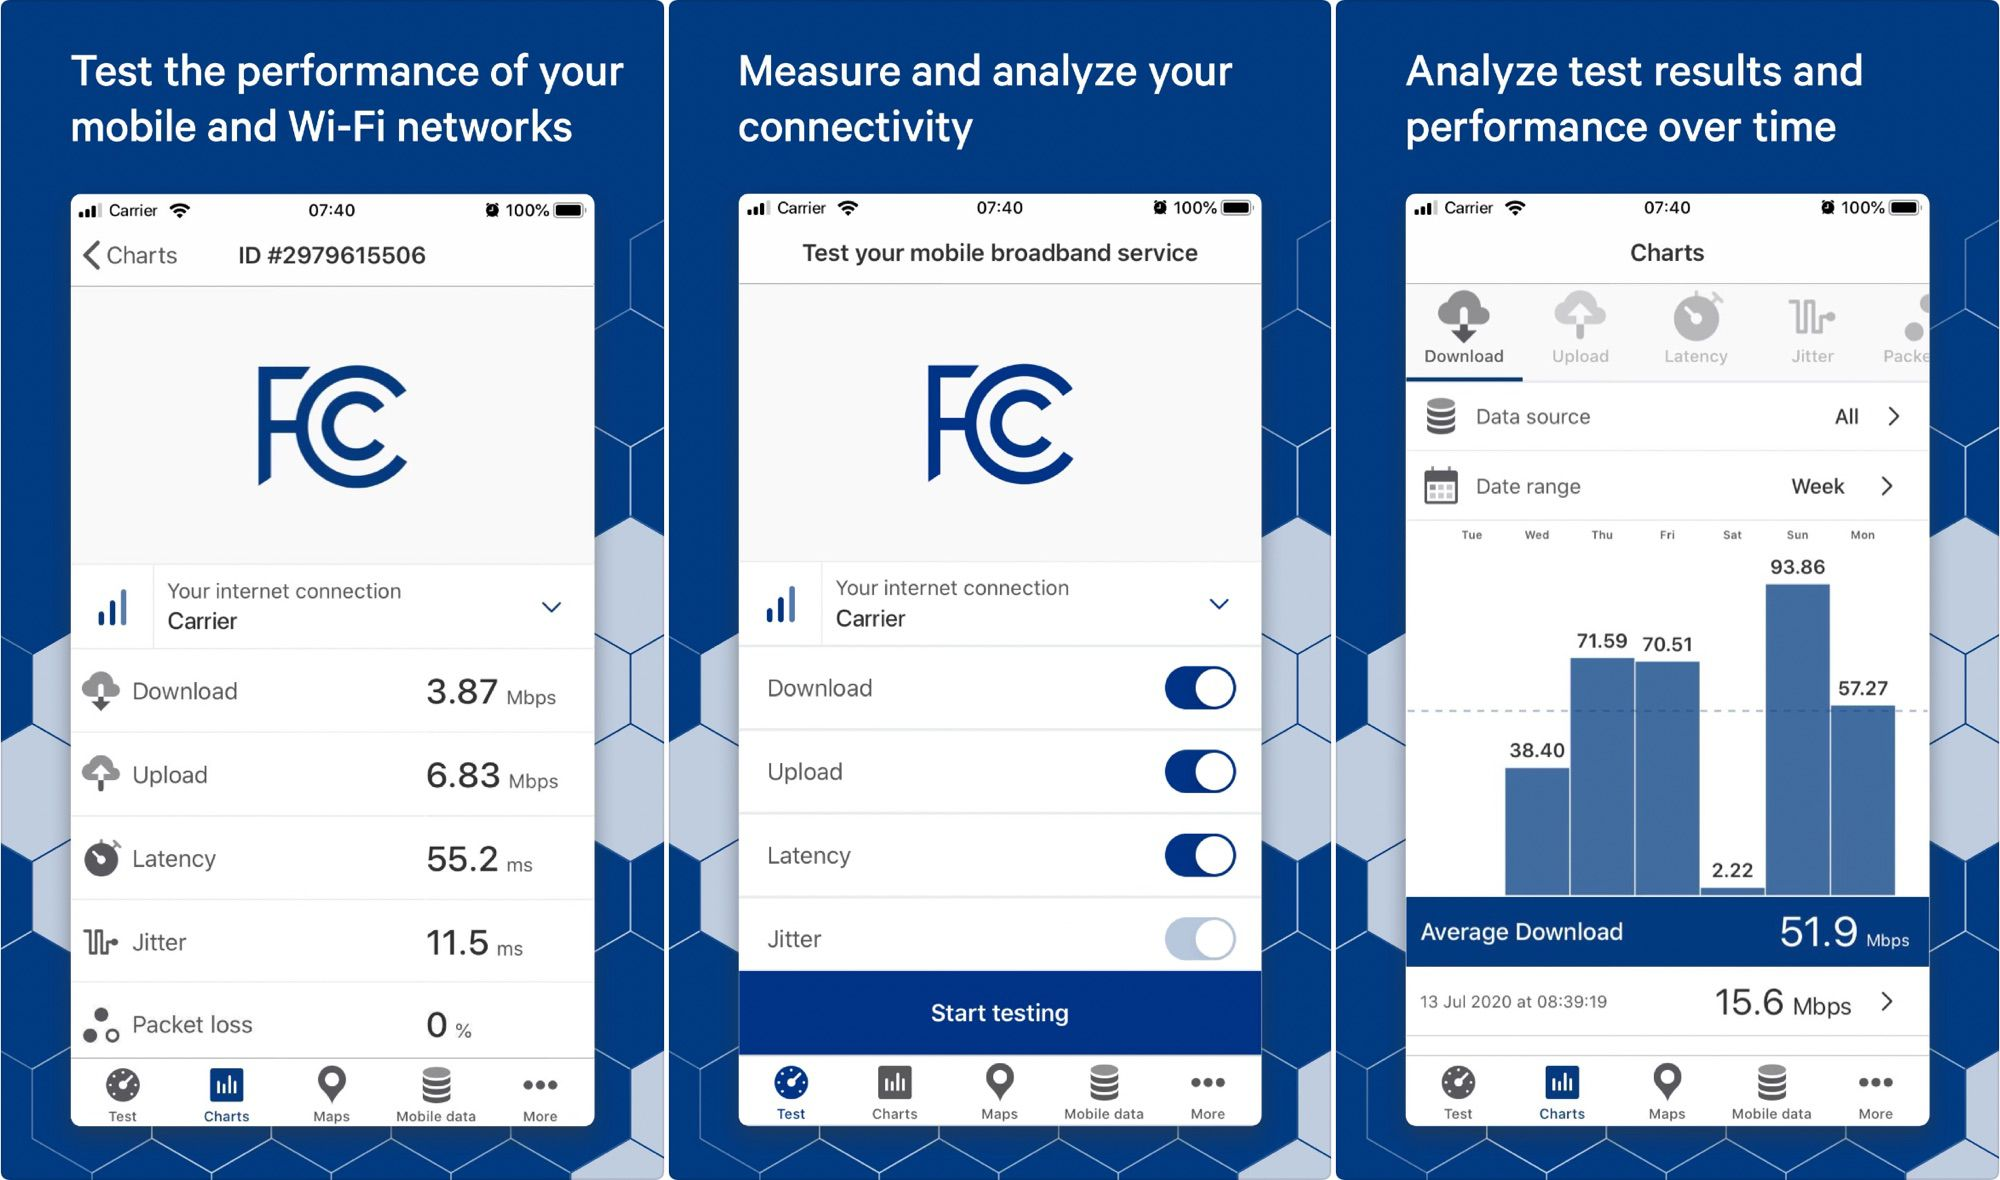 FCC Asks People to Use FCC Speed Test App to Measure U.S. Broadband Availability